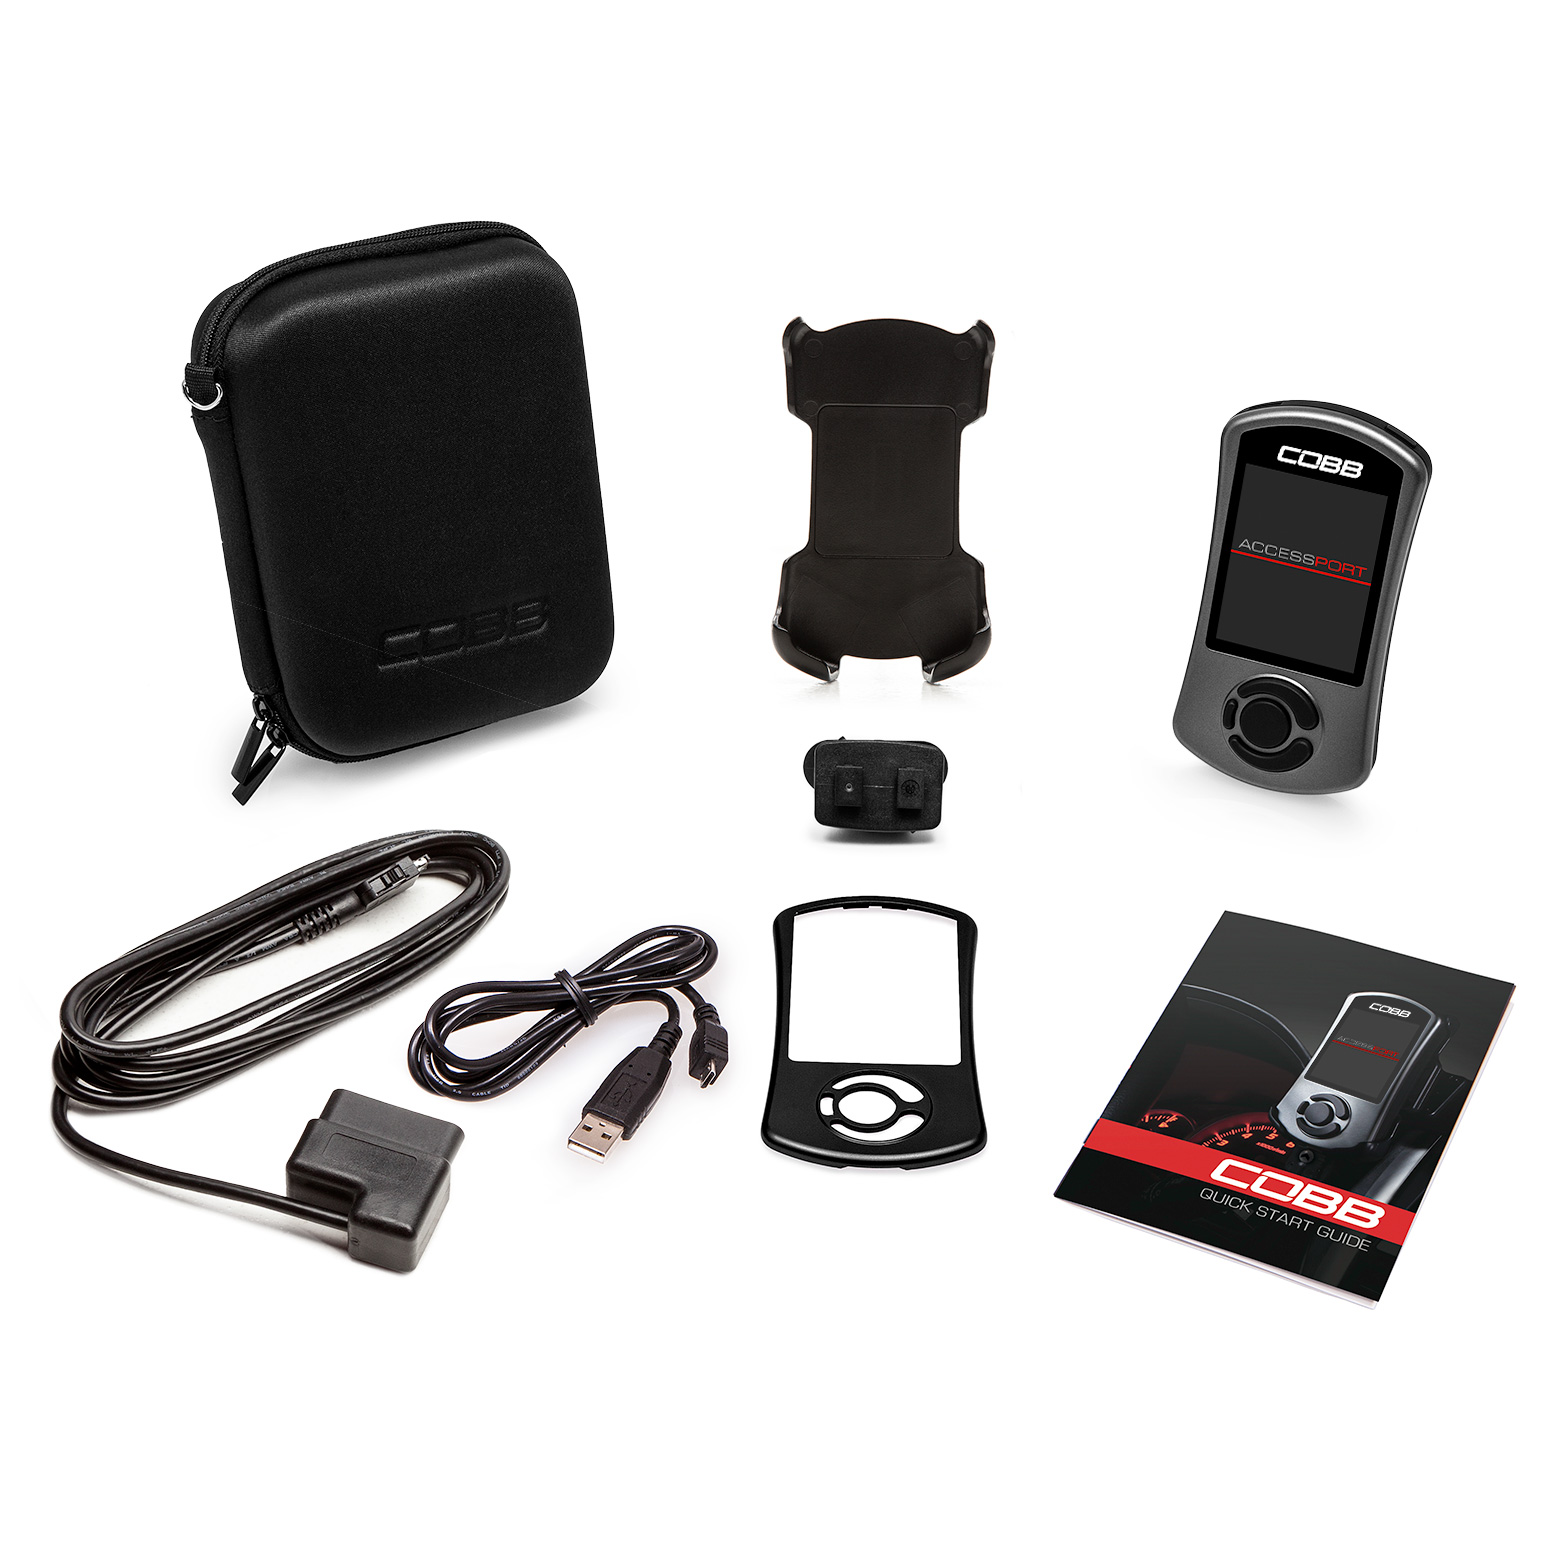 Accessport with PDK Flashing for Porsche 911 991.2 Turbo / Turbo S (Update to PDK Flashing)